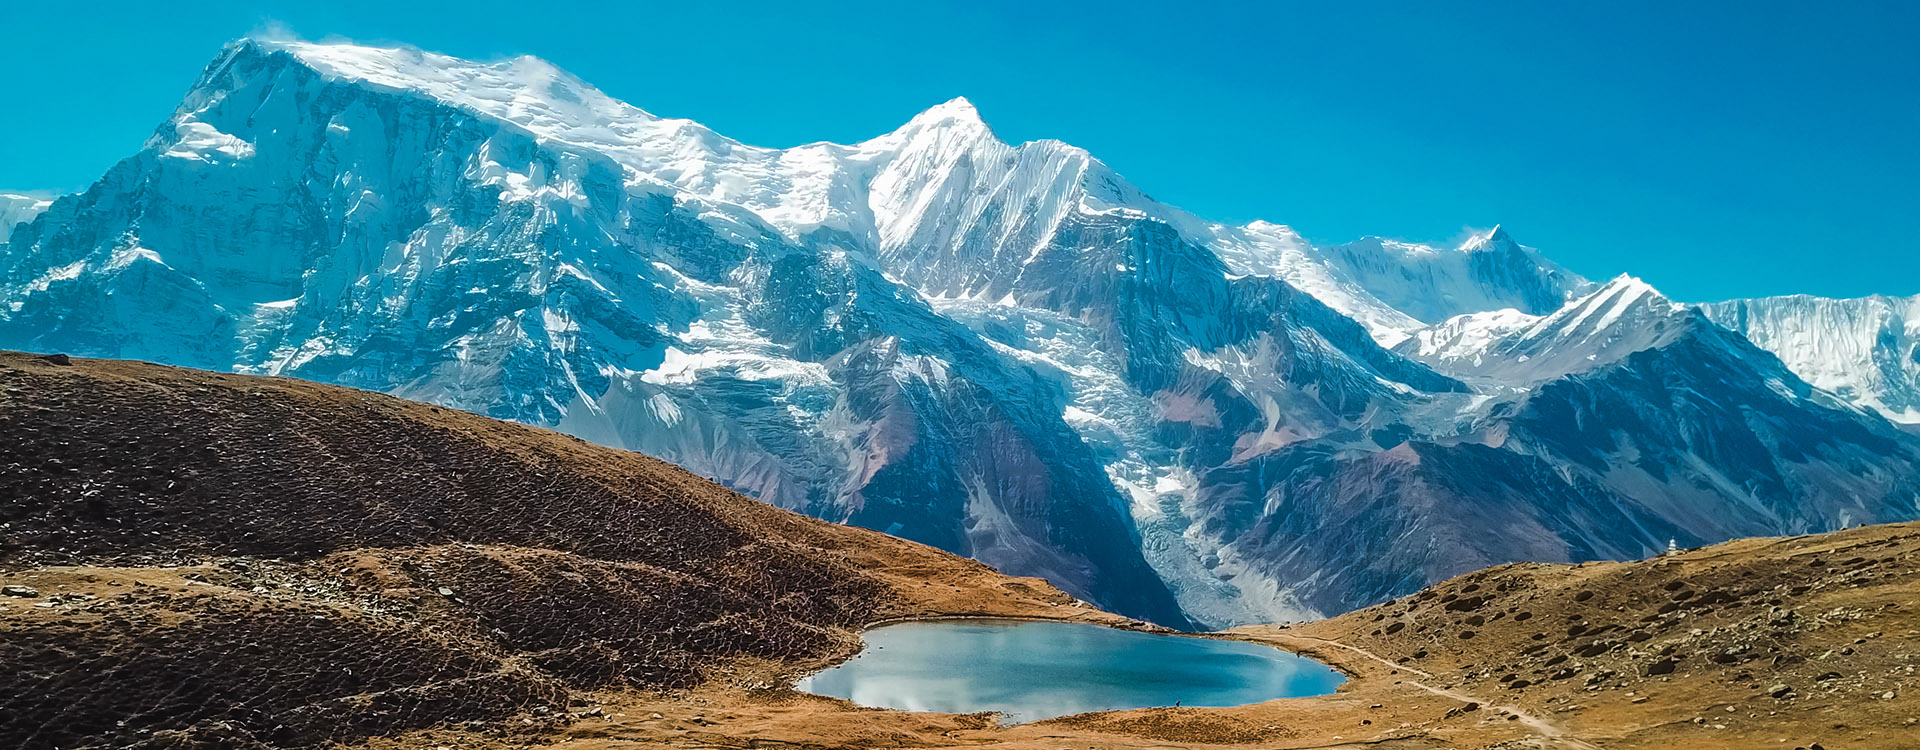 Ice lake, as part of the Annapurna Circuit Trek detour, Himalayas, Nepal. Annapurna chain in the back, covered with snow